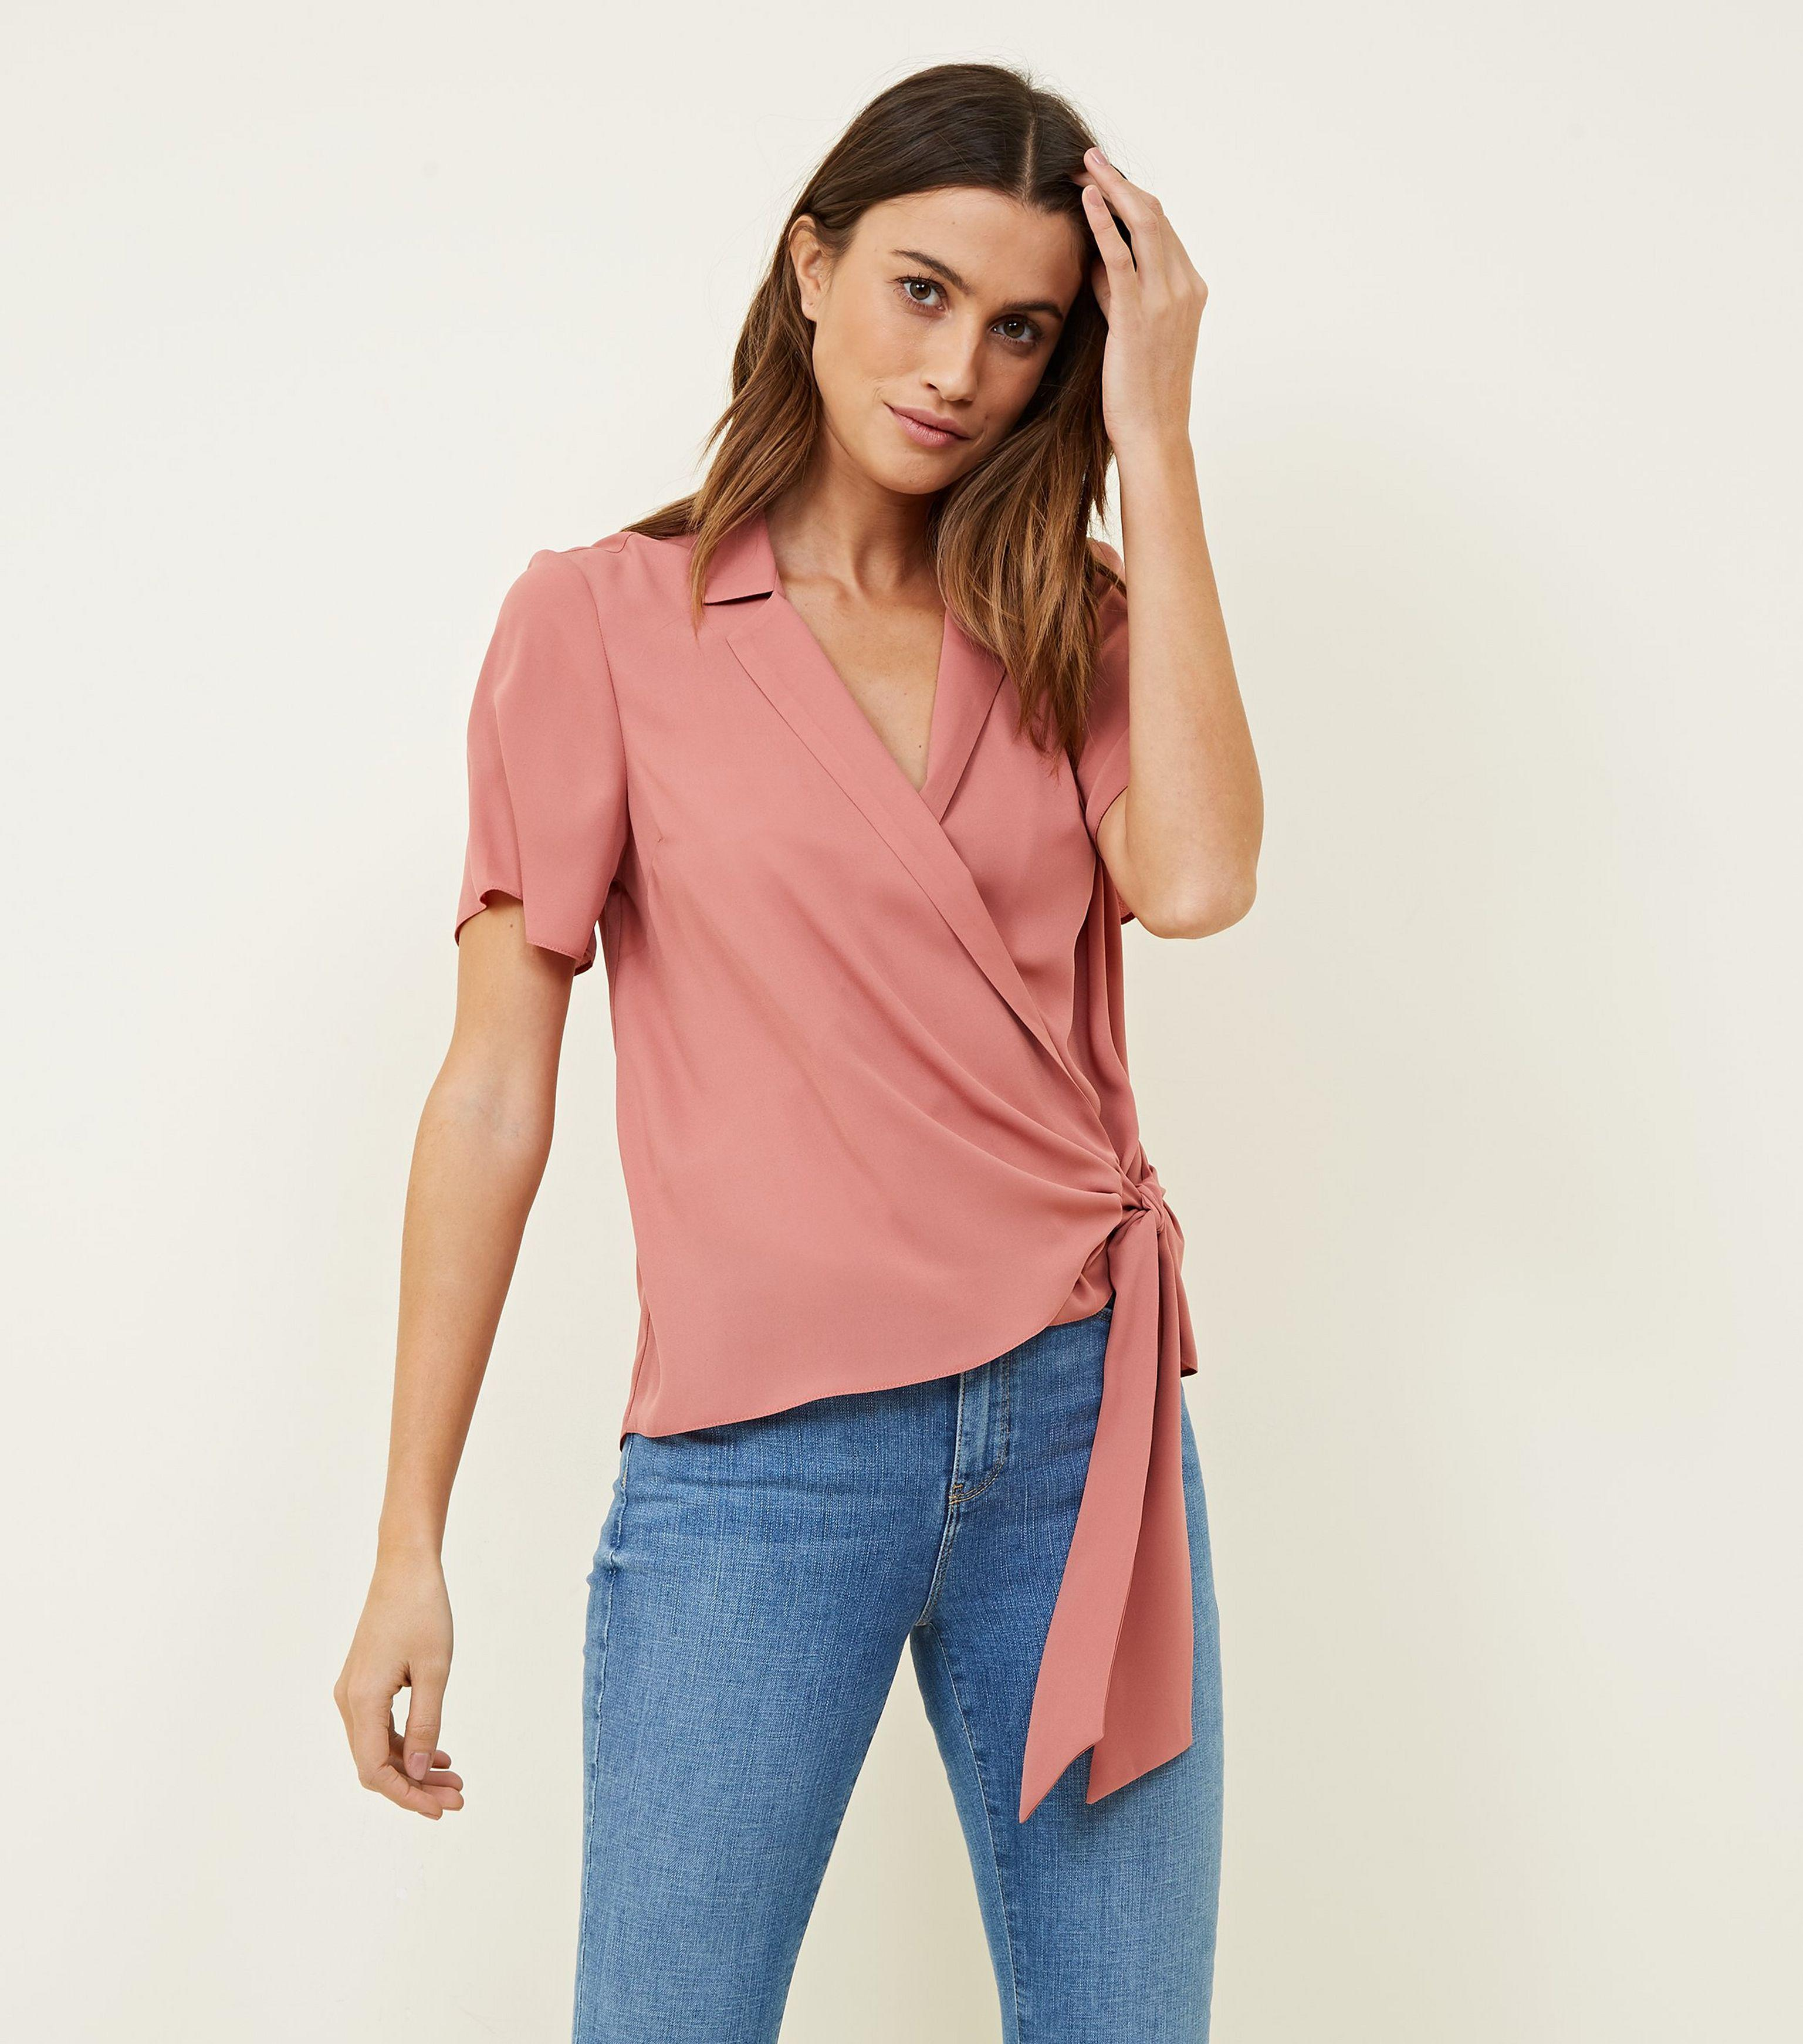 a7f38a591c386 New Look Mid Pink Wrap Front Revere Collar Blouse in Pink - Lyst